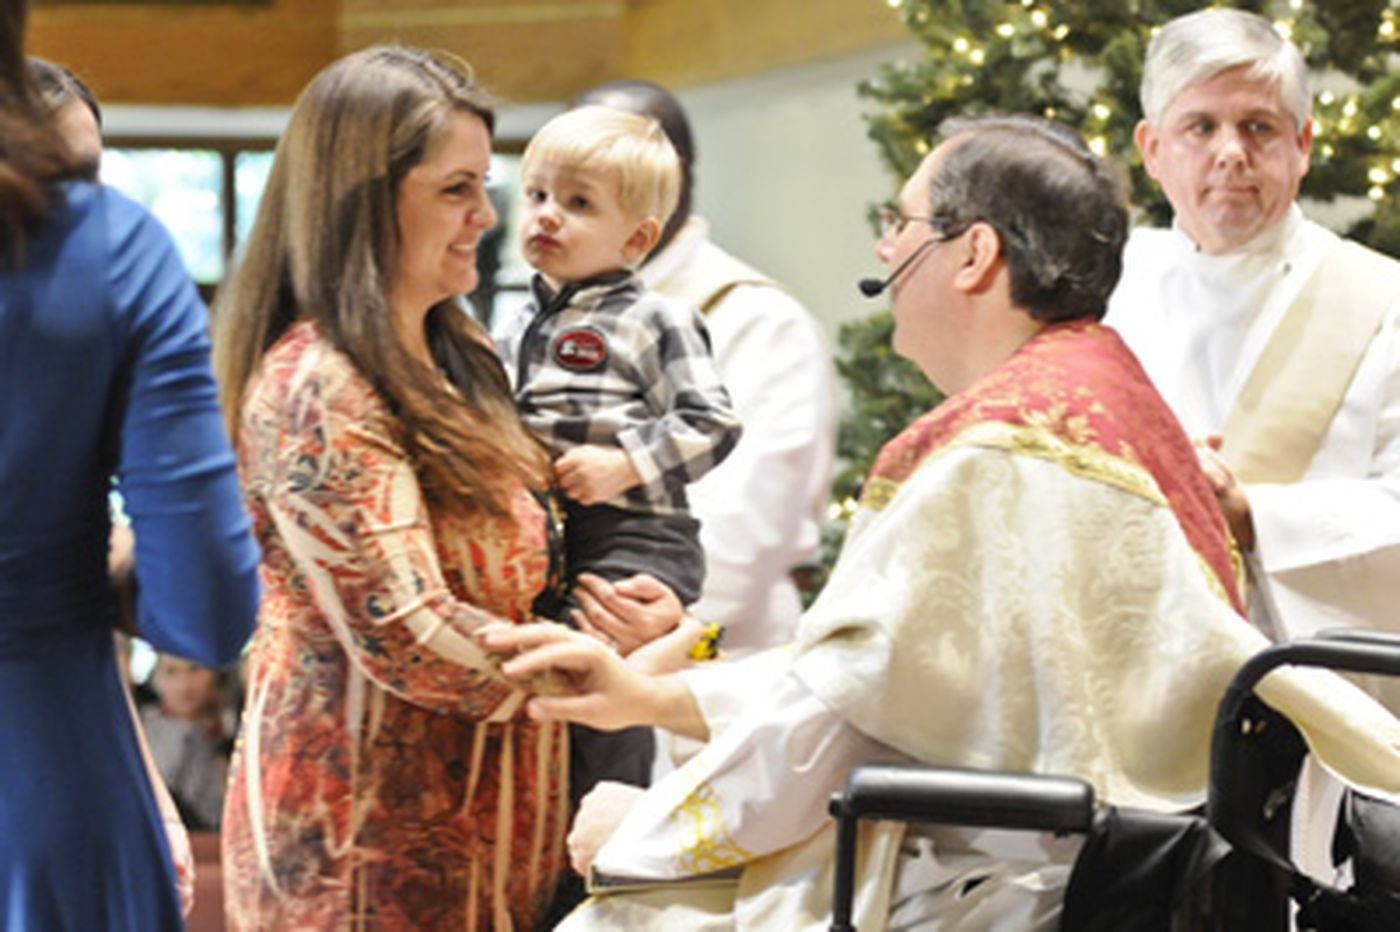 Mass in Camden County brightens military in Afghanistan